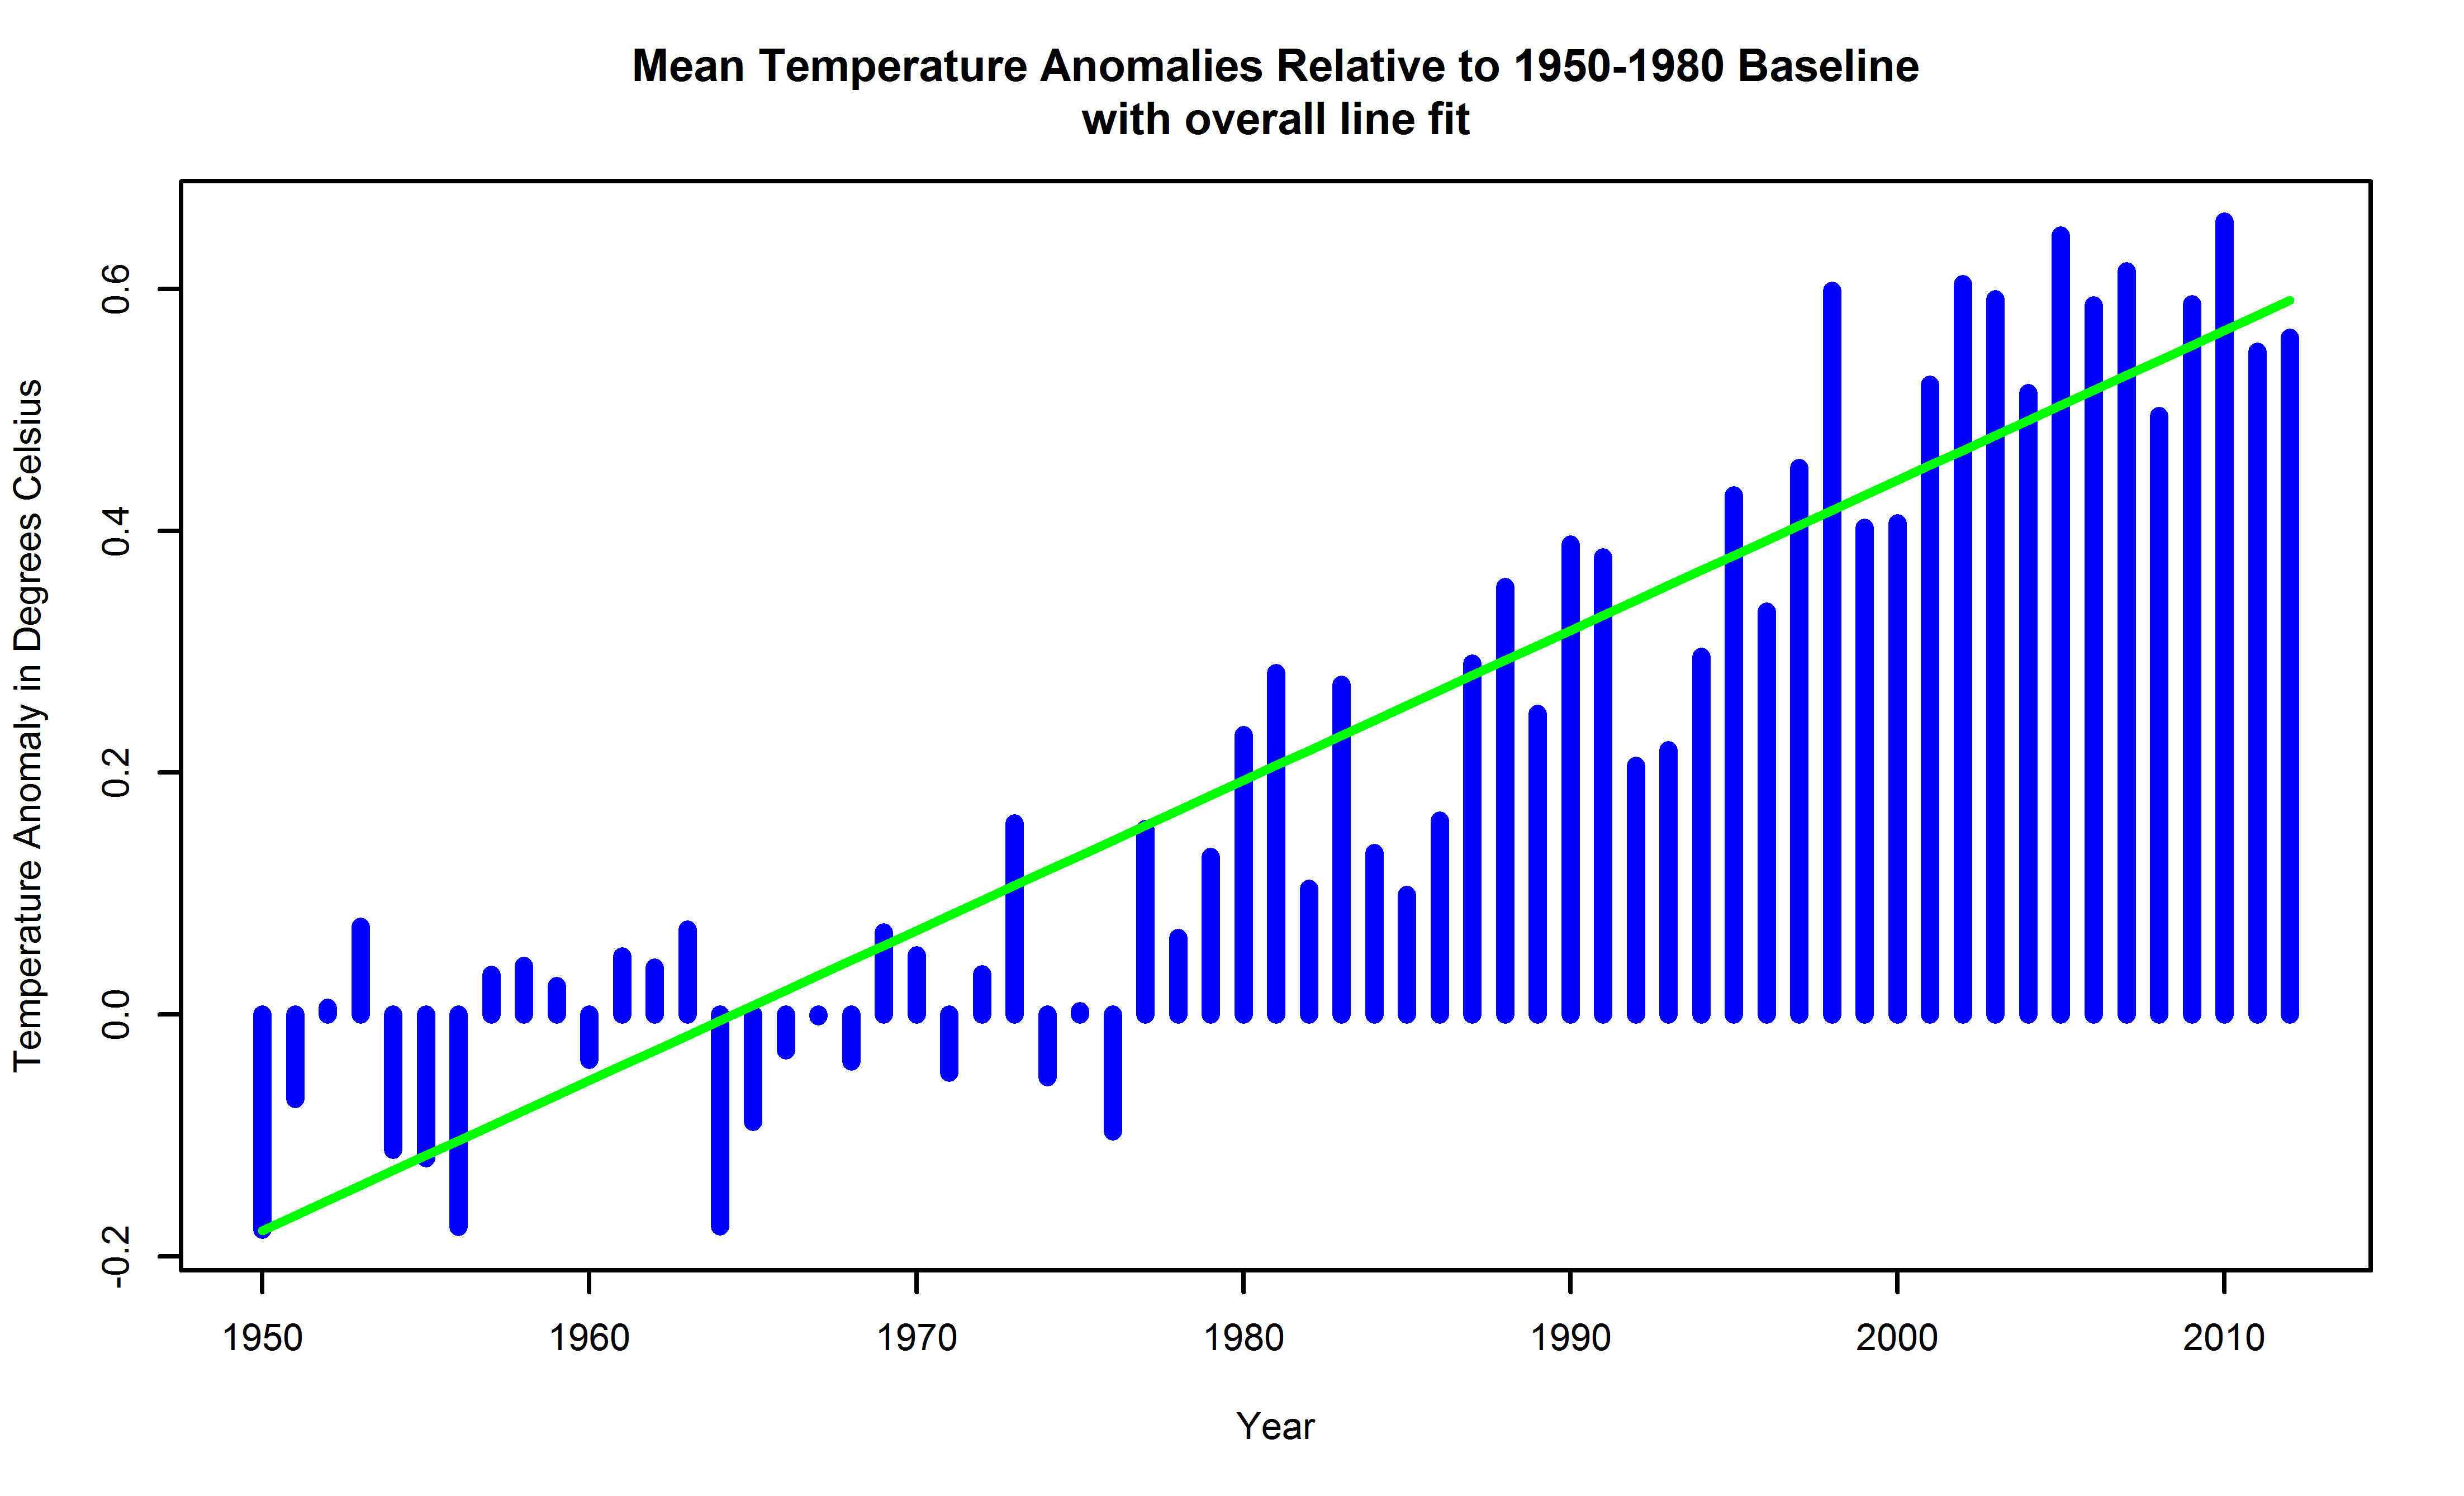 Global surface temperature anomalies relative to a 1950-1980 baseline, with long term linear trend atop.